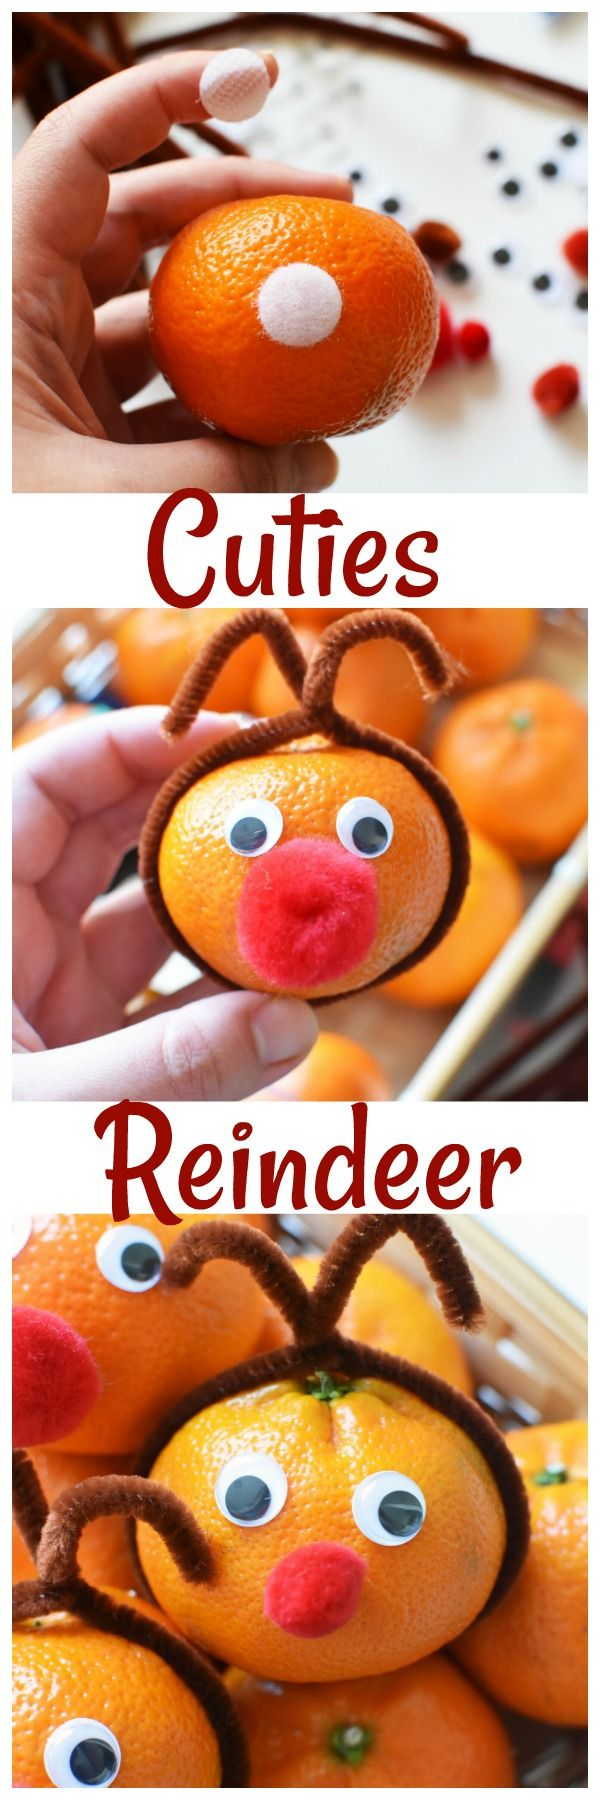 Reindeer Mandarin Oranges Craft +Brighten Someone's Day with Cuties. See how you can brighten someones day with Cuties. Plus, get what you need to make this adorable Cuties Reindeer Craft. via @savvysavingcoup #AD #100DaysofSunshine @cuties